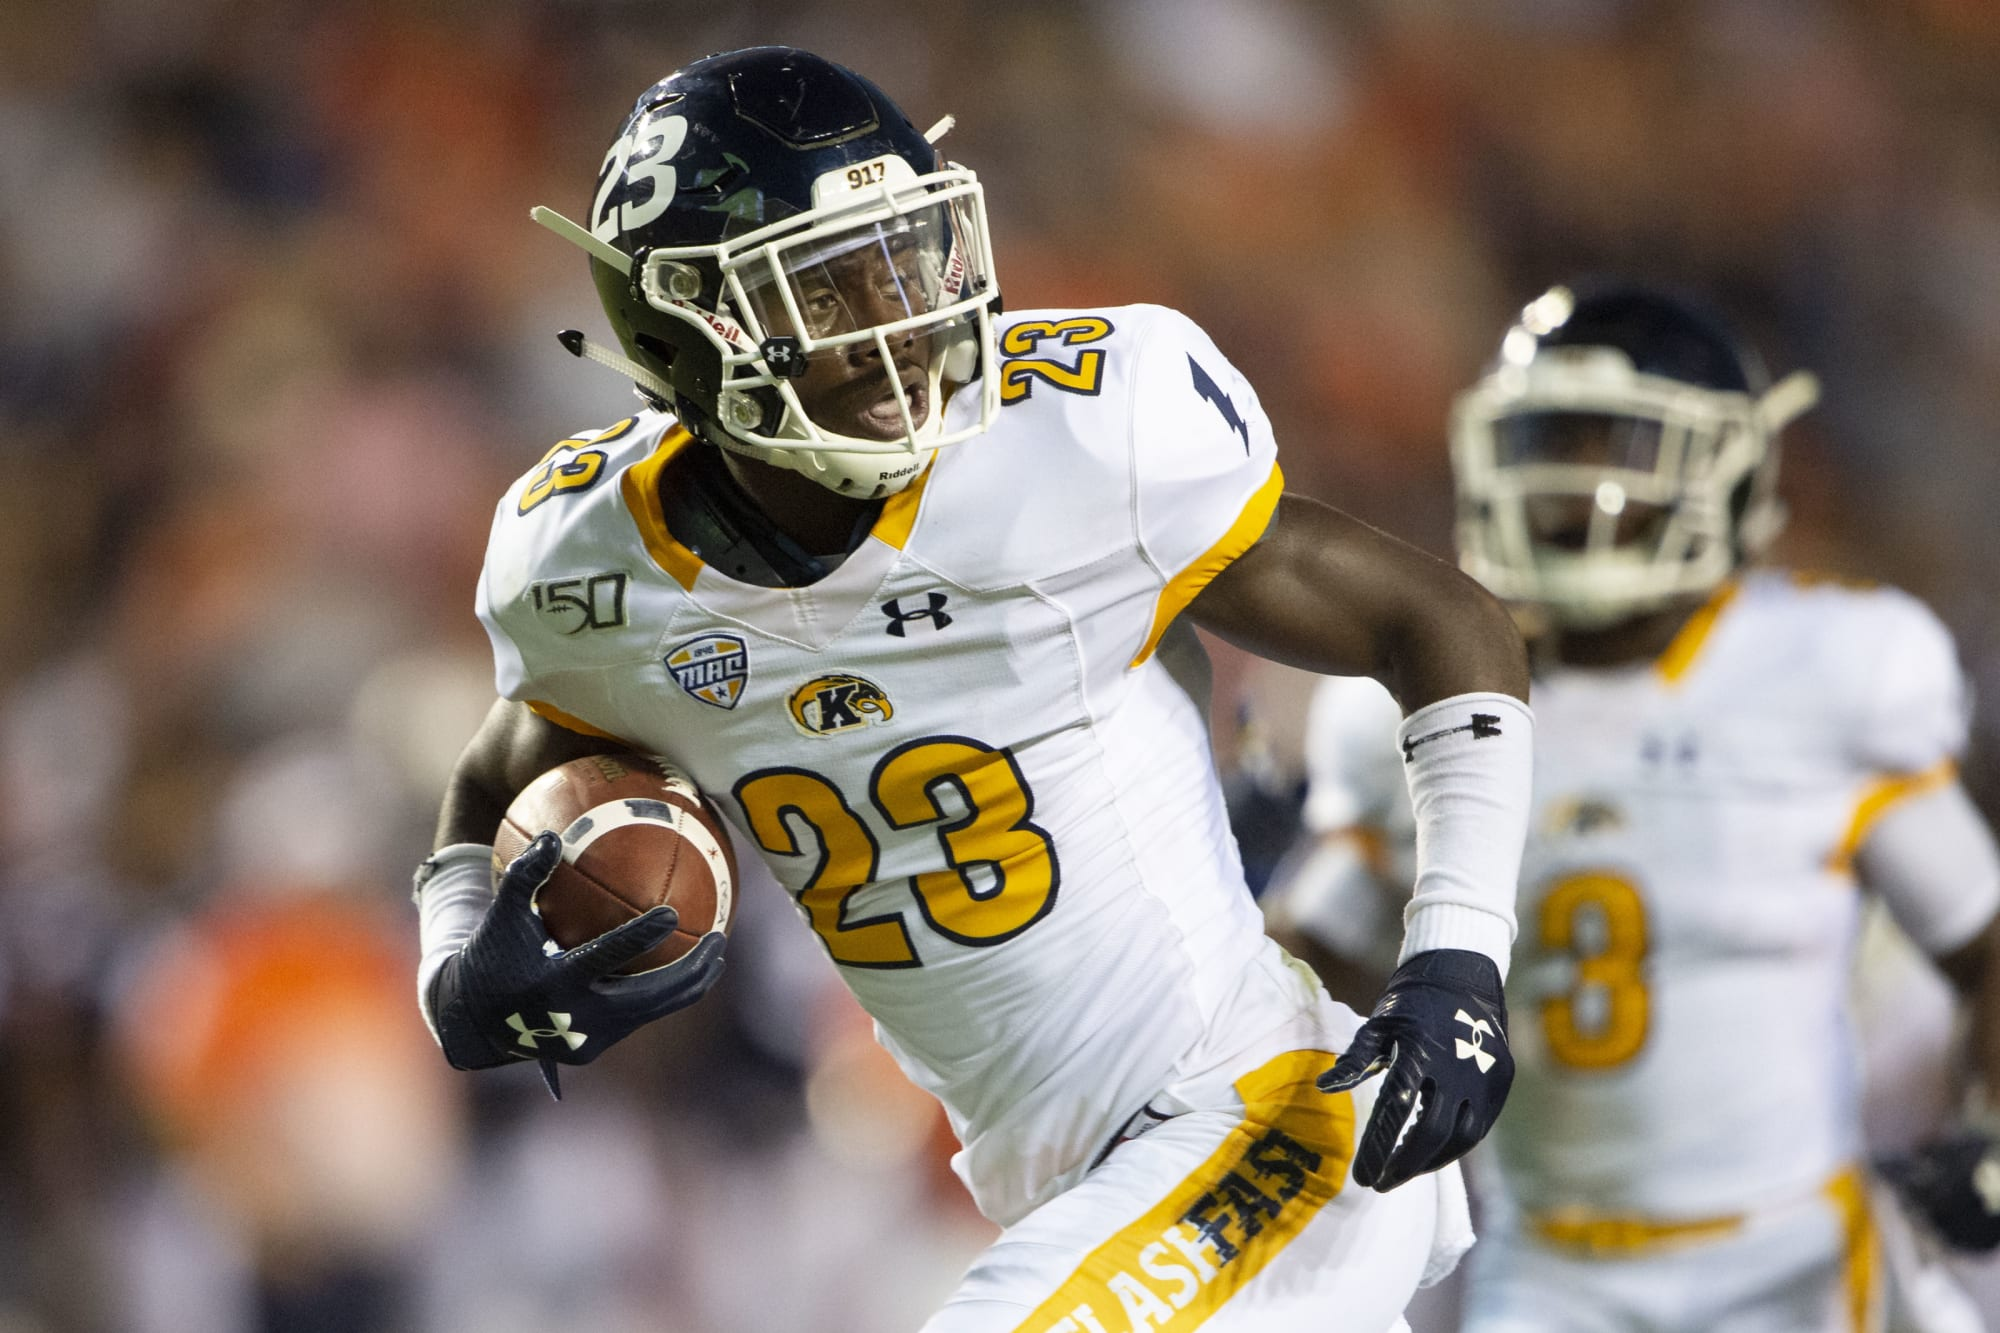 2021 NFL Draft: Kent State WR Isaiah McKoy a sleeper name to bookmark